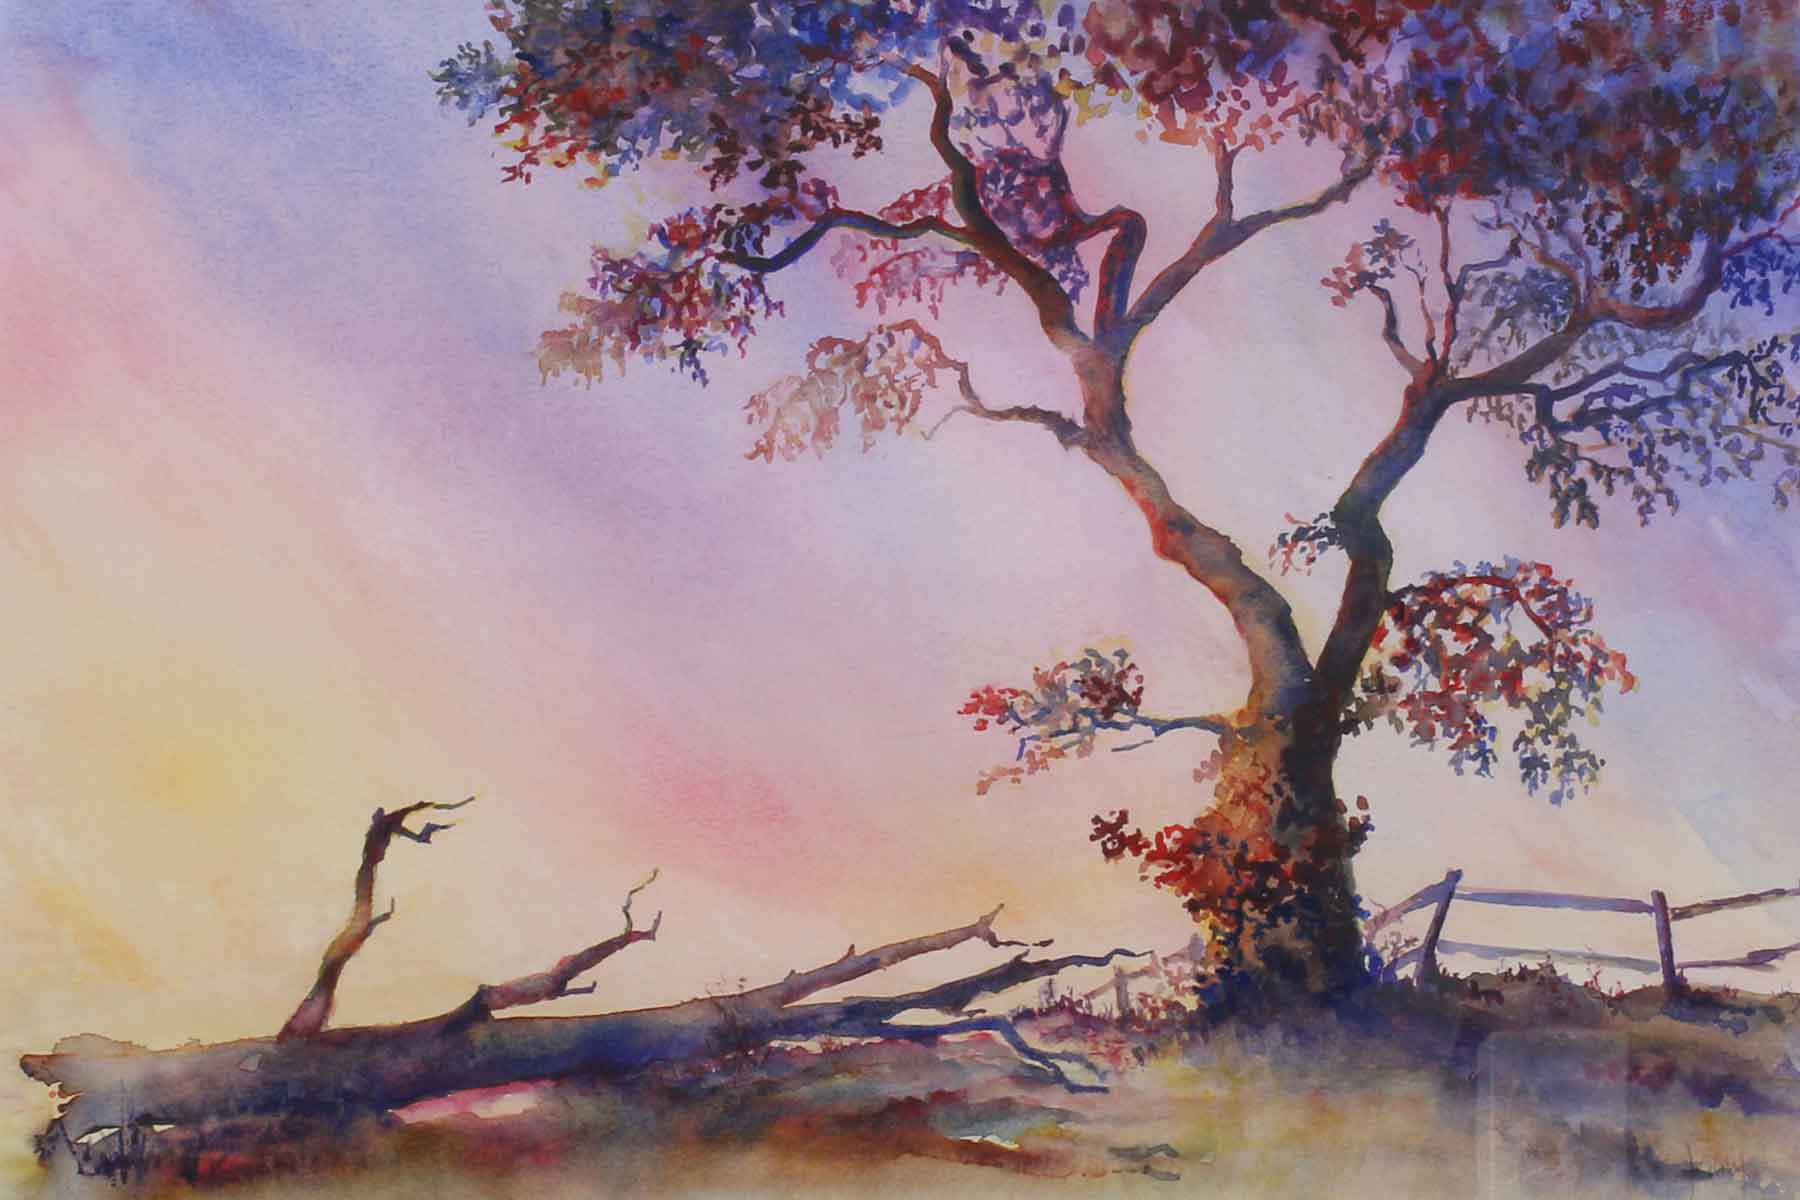 Jenny Brown - The Lone Tree